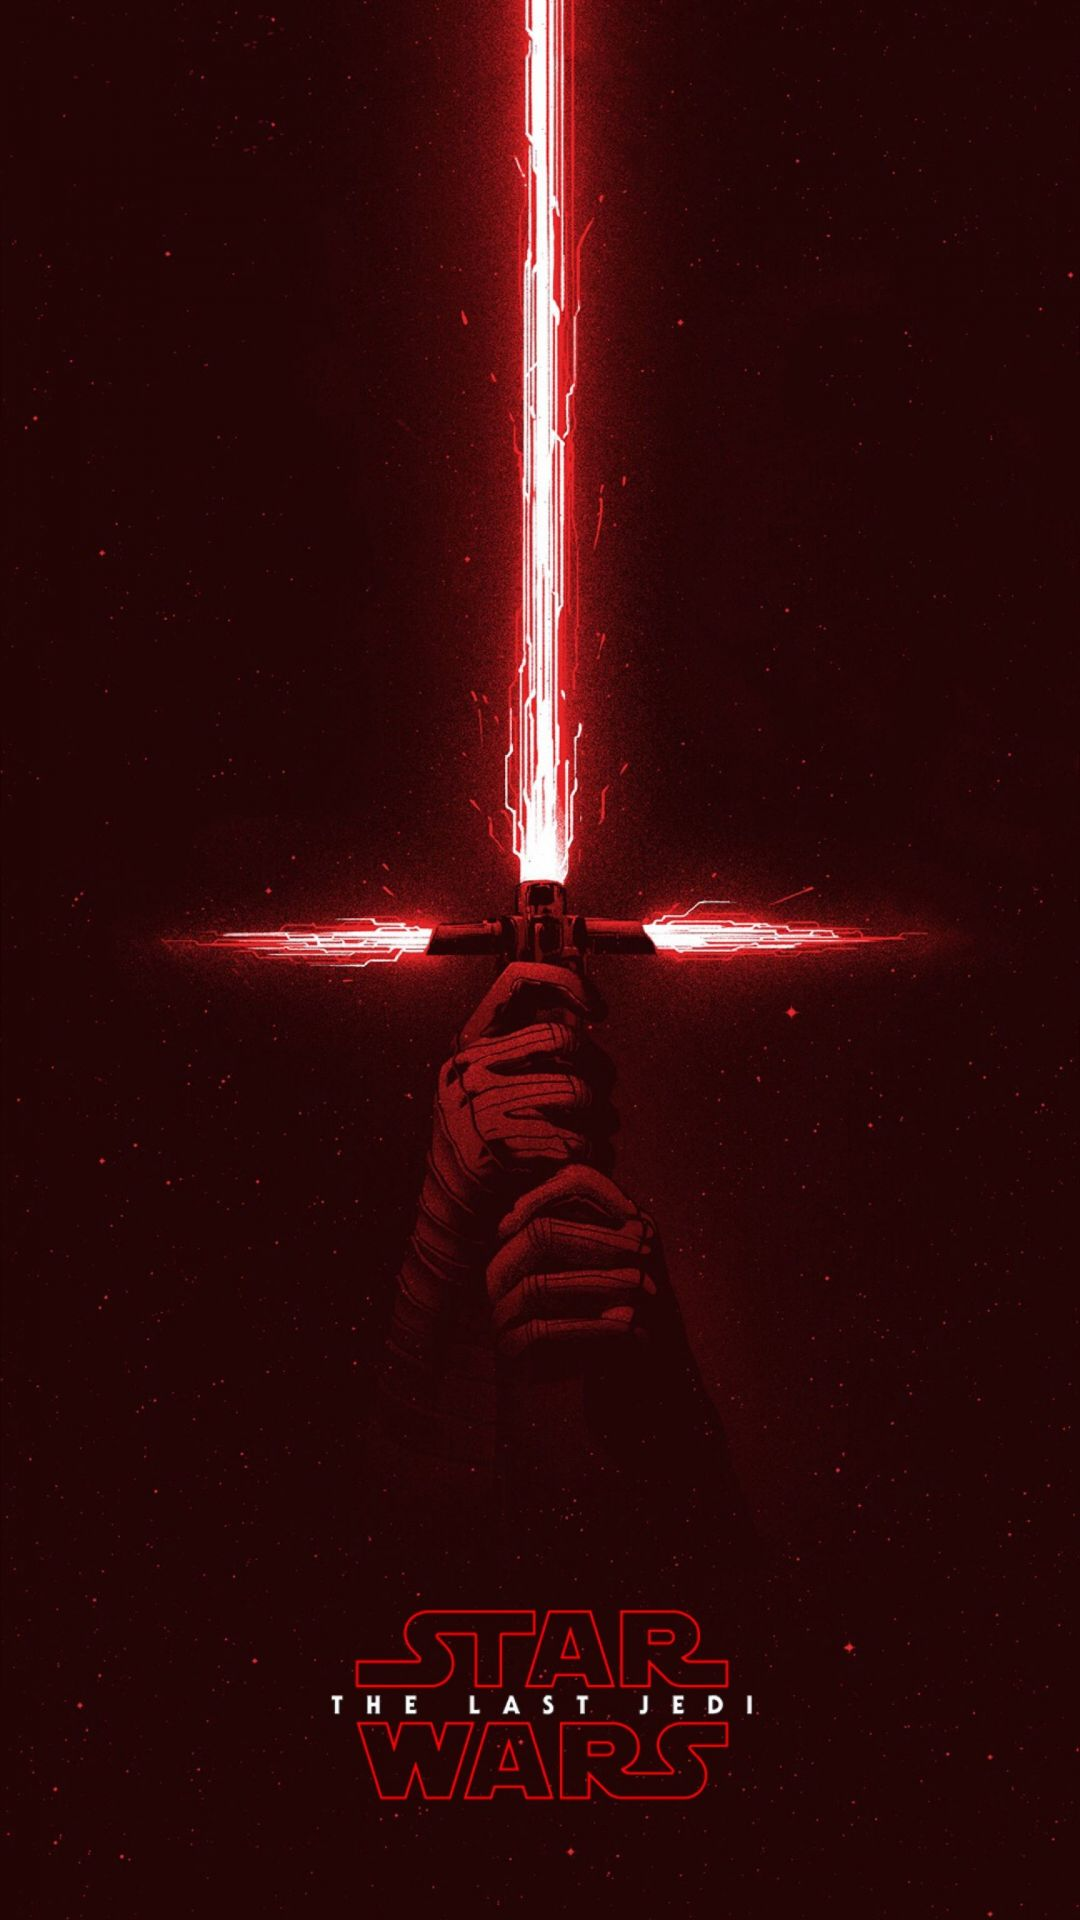 Star Wars iPhone 6 - Android, iPhone, Desktop HD Backgrounds / Wallpapers (1080p, 4k) (354359) - Sci-fi